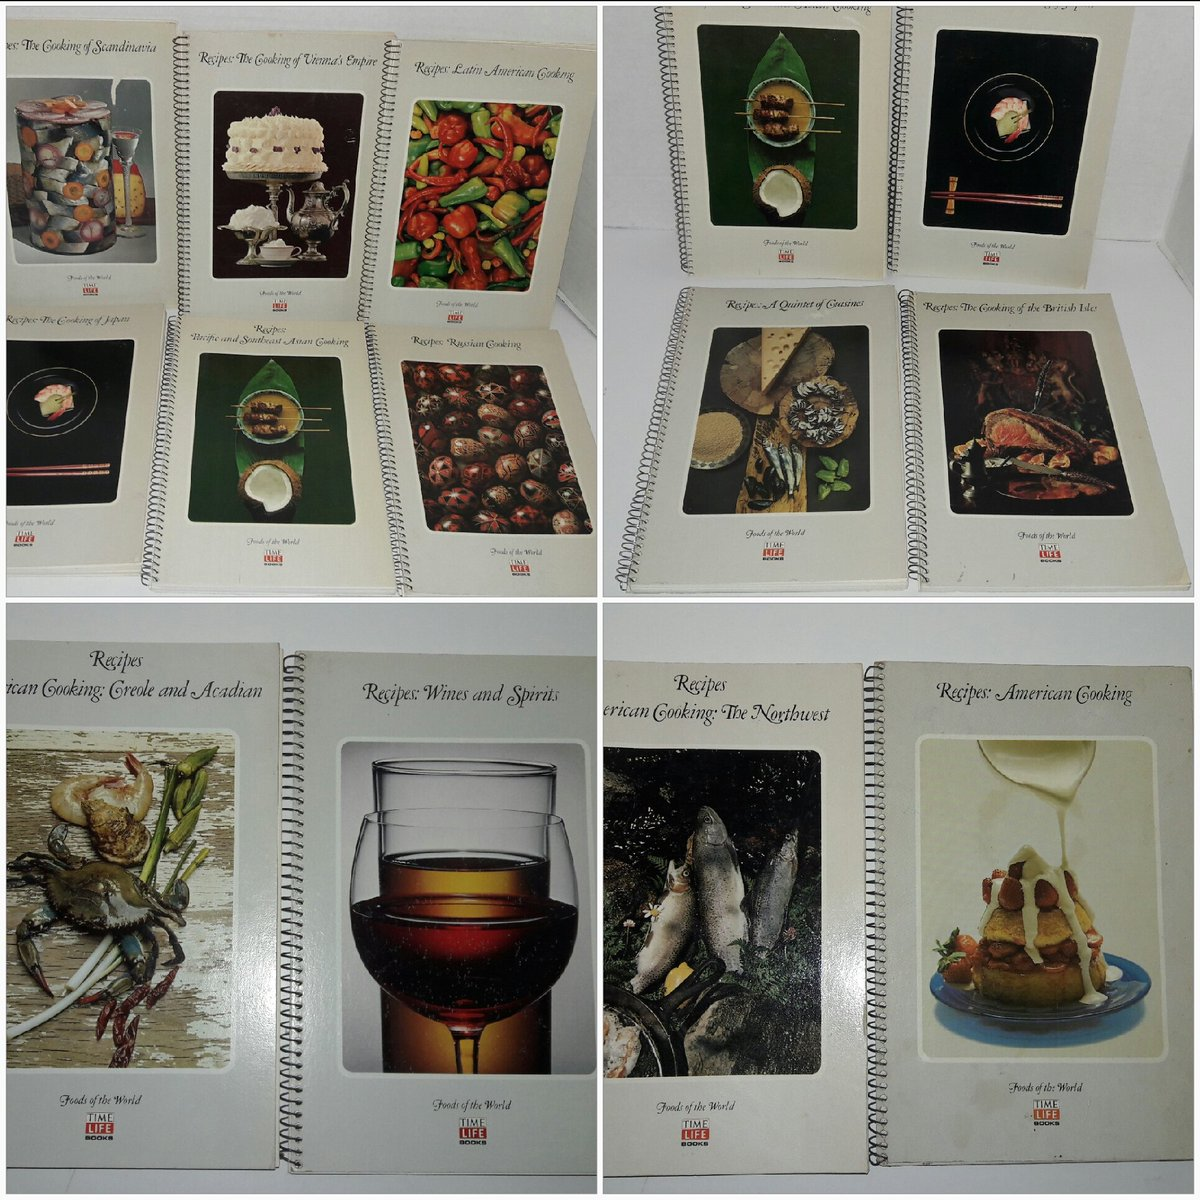 Time Life Foods of The World Recipe Books  https:// rover.ebay.com/rover/0/0/0?mp re=https%3A%2F%2Fwww.ebay.com%2Fulk%2Fitm%2F112606881241 &nbsp; …  #Cooking #vintage #internationalfood #books<br>http://pic.twitter.com/I2D15Zj18u